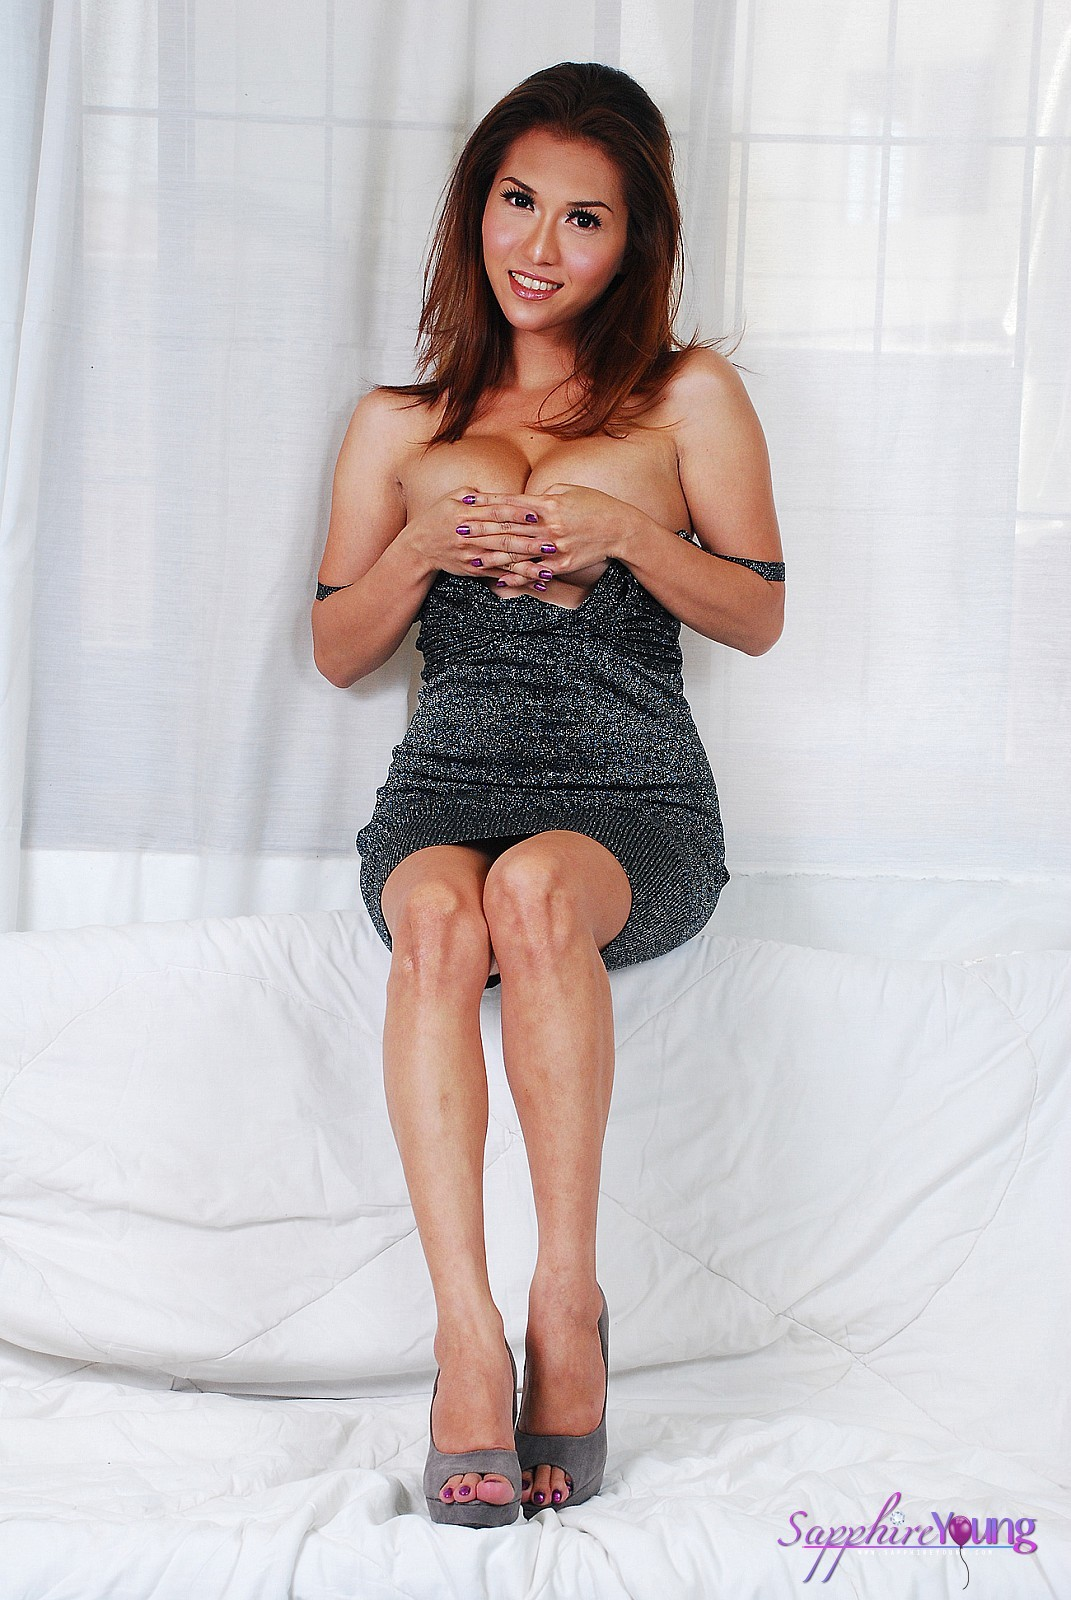 Spicy Tgirl Sapphire Young